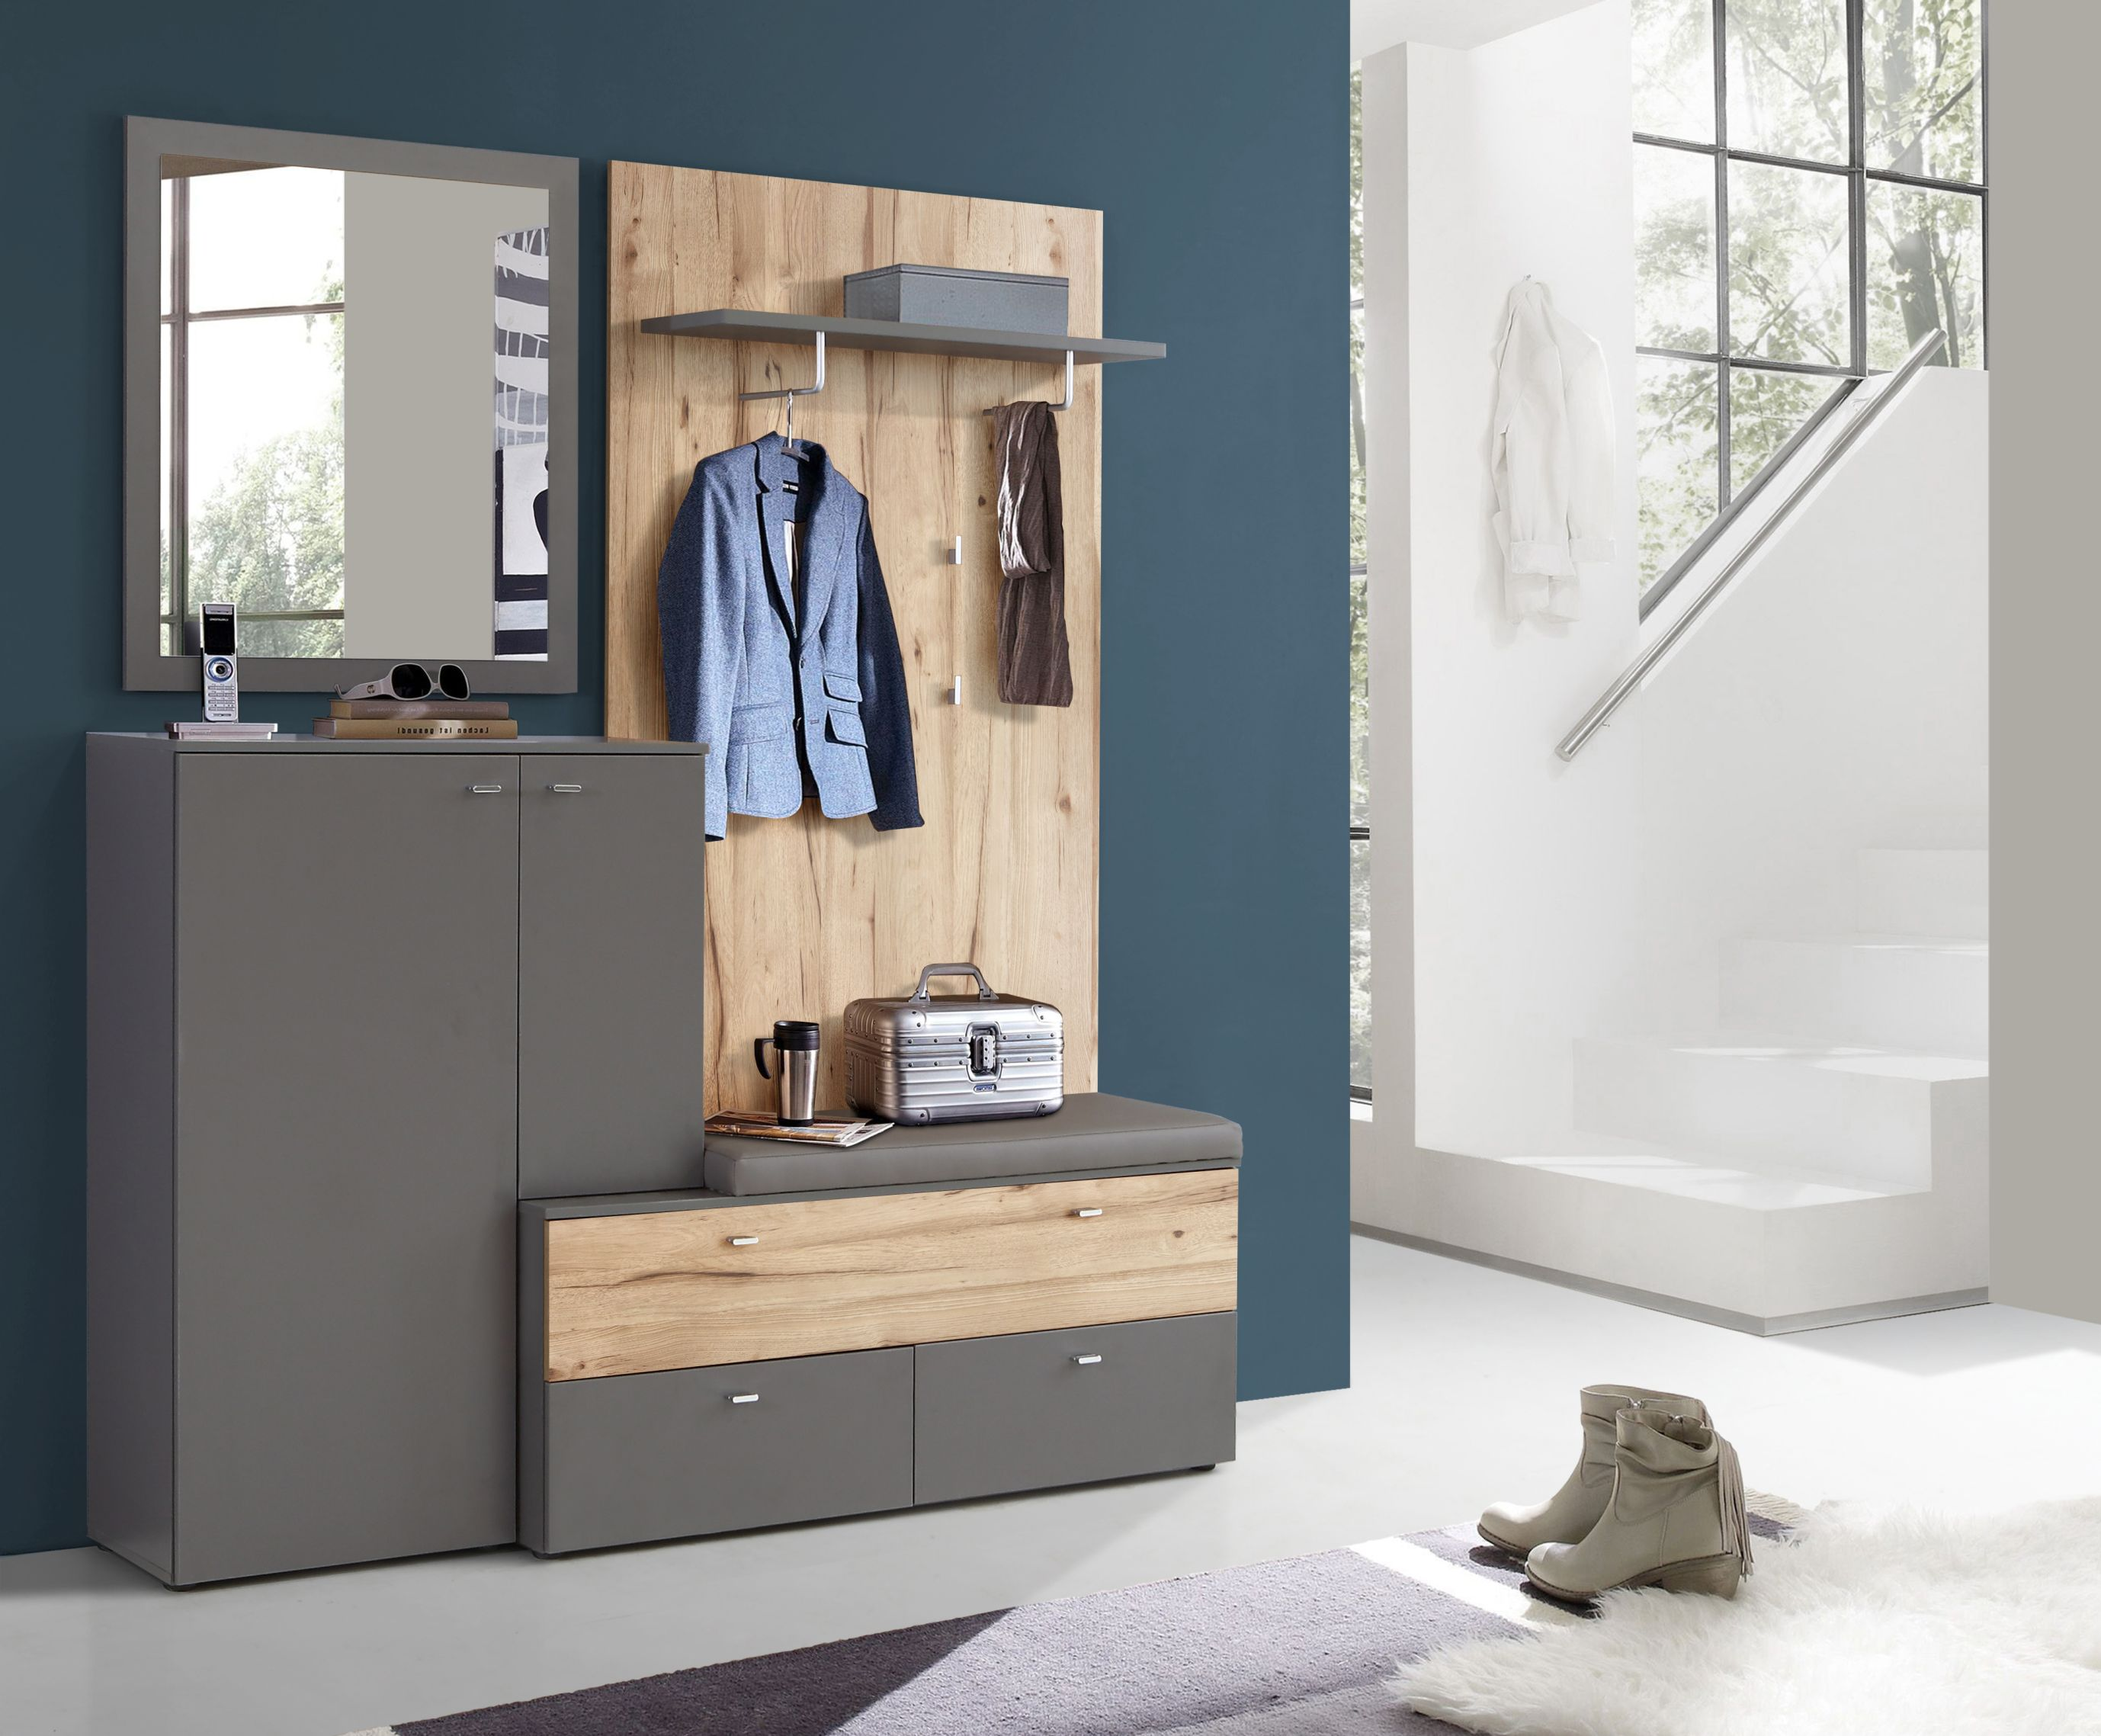 garderobe kompakt como von forte wolfram grau planked eiche. Black Bedroom Furniture Sets. Home Design Ideas